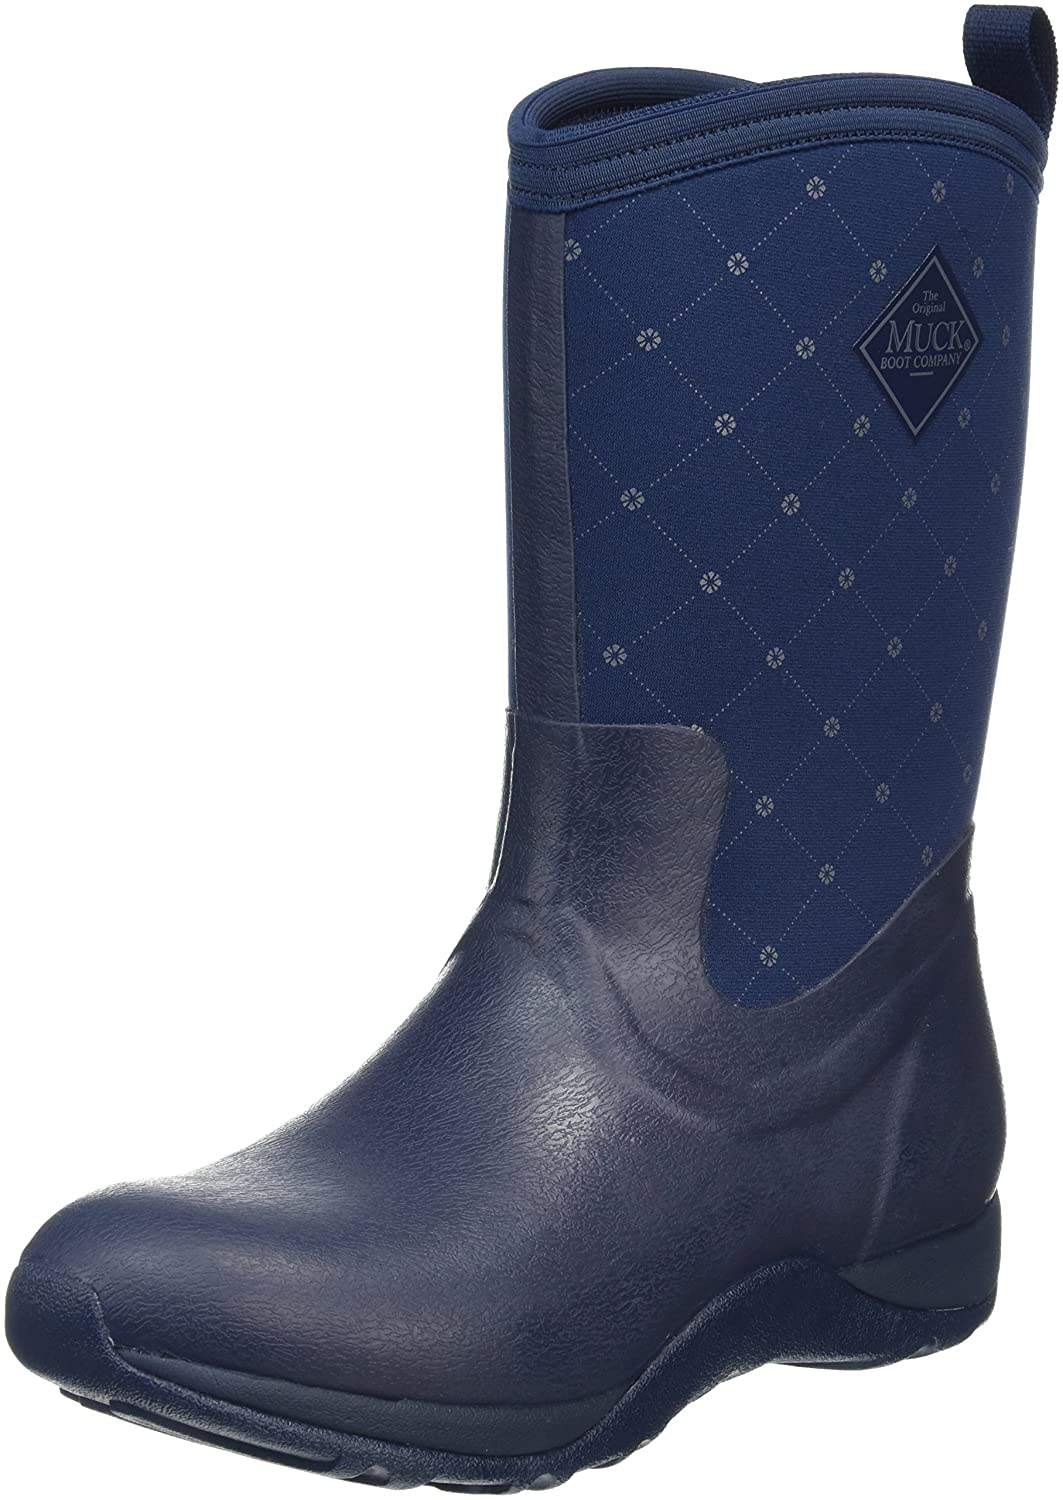 Muck Boot Women's Arctic Weekend Mid Snow B01J6MBWK4 8 B(M) US|Navy Quilt